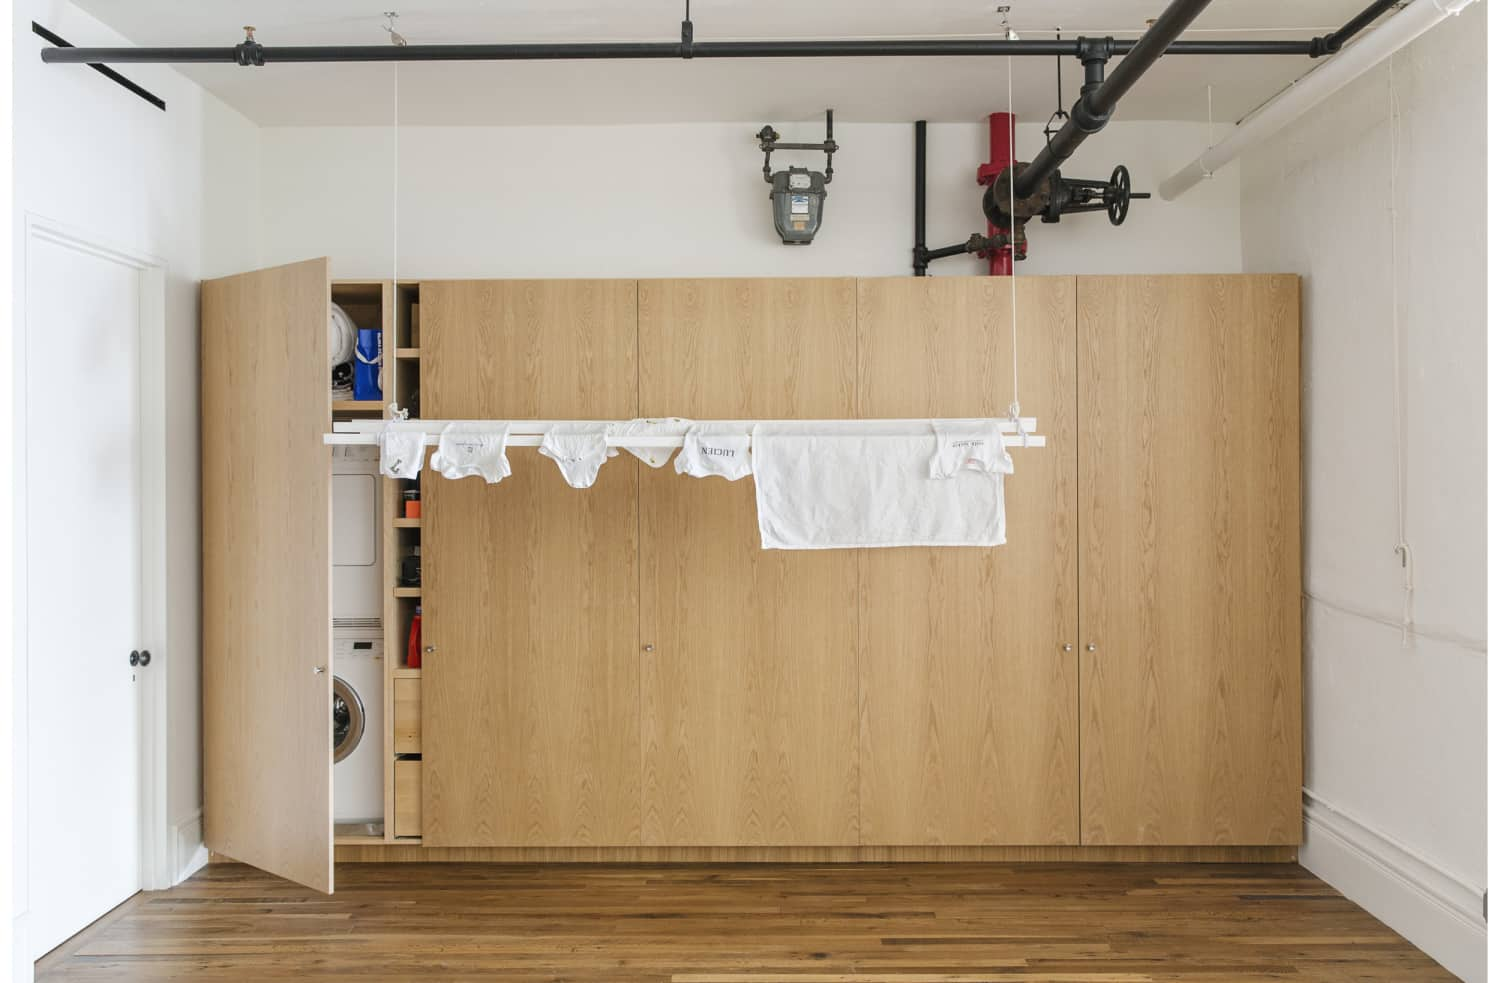 How to Fit a Washer and Dryer into the Smallest of Spaces